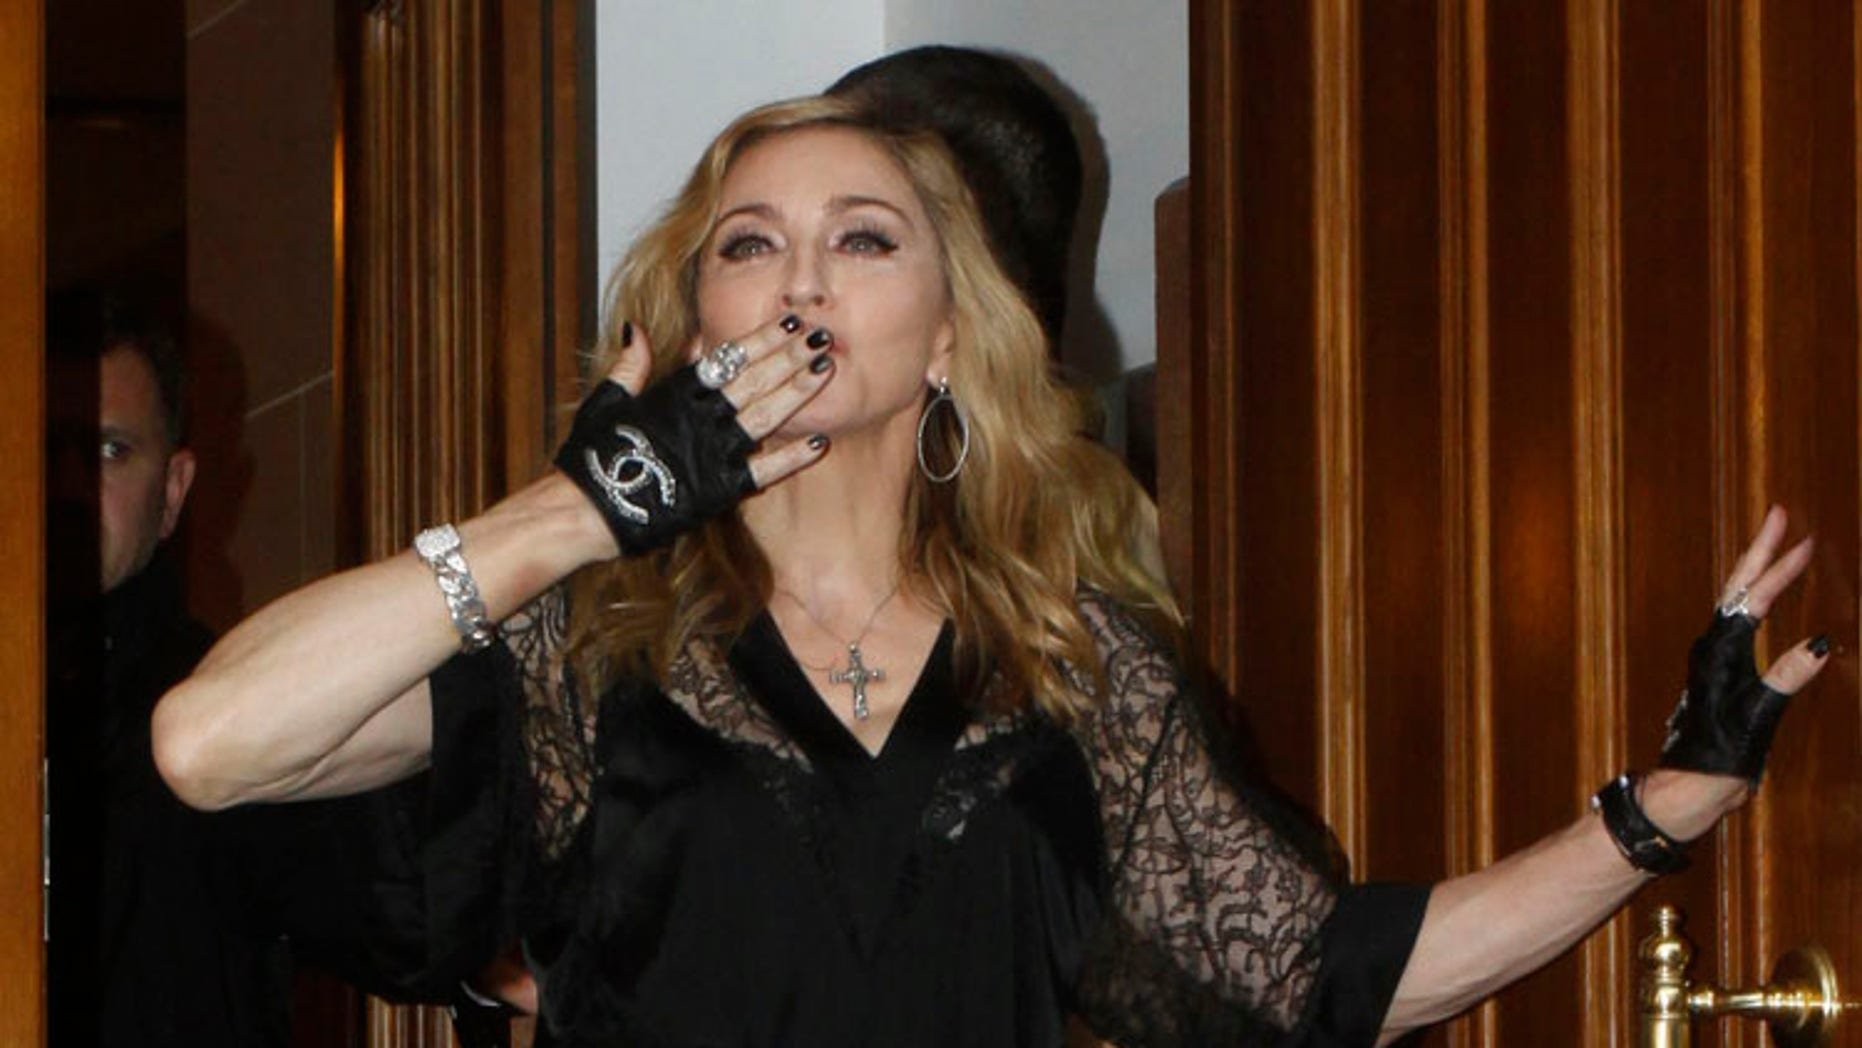 U.S. singer Madonna sends an air kiss to her fans as she walks out of a building during the opening of a new fitness club on the eve of her MDNA tour concert at the Olympic sports complex in Moscow, August 6, 2012. REUTERS/Ivan Burnyashev (RUSSIA - Tags: ENTERTAINMENT) - RTR36B32